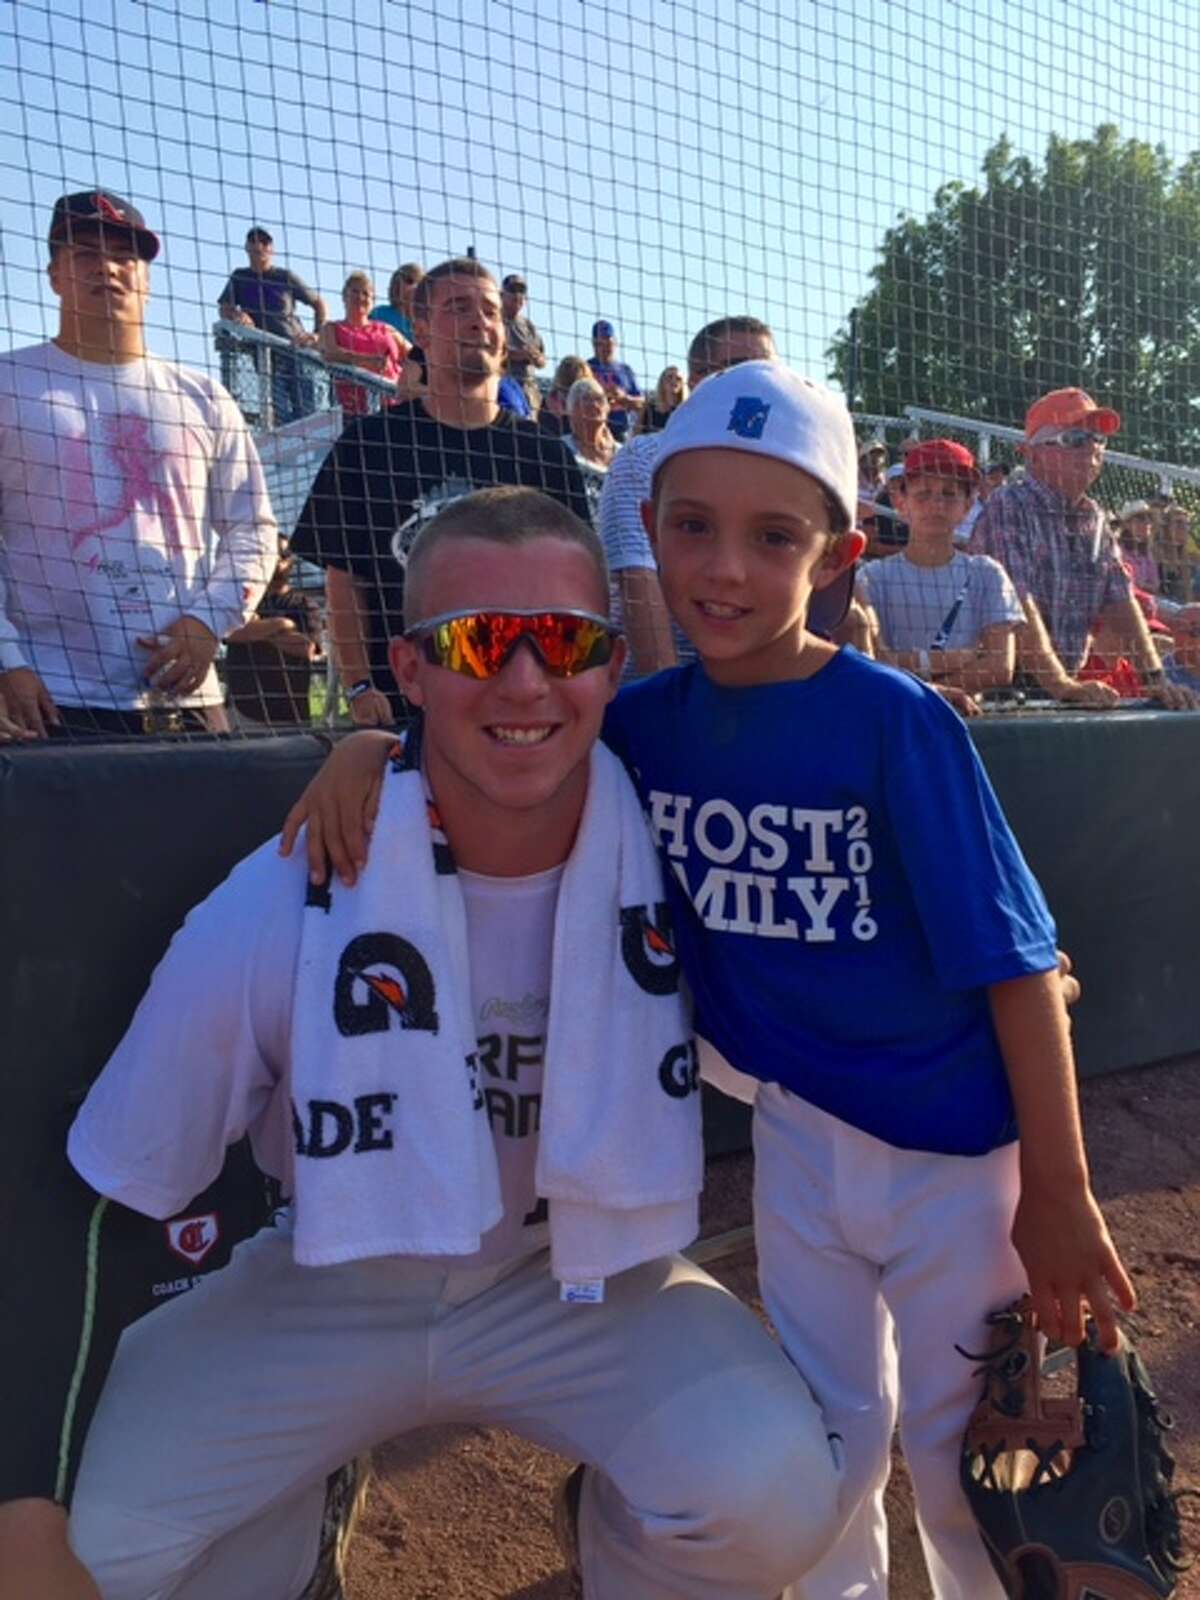 Albany Dutchmen player Justin Childers poses with Ryan Scholz, part of the host family that houses Childers during the season. (Courtesy of Scholz family)